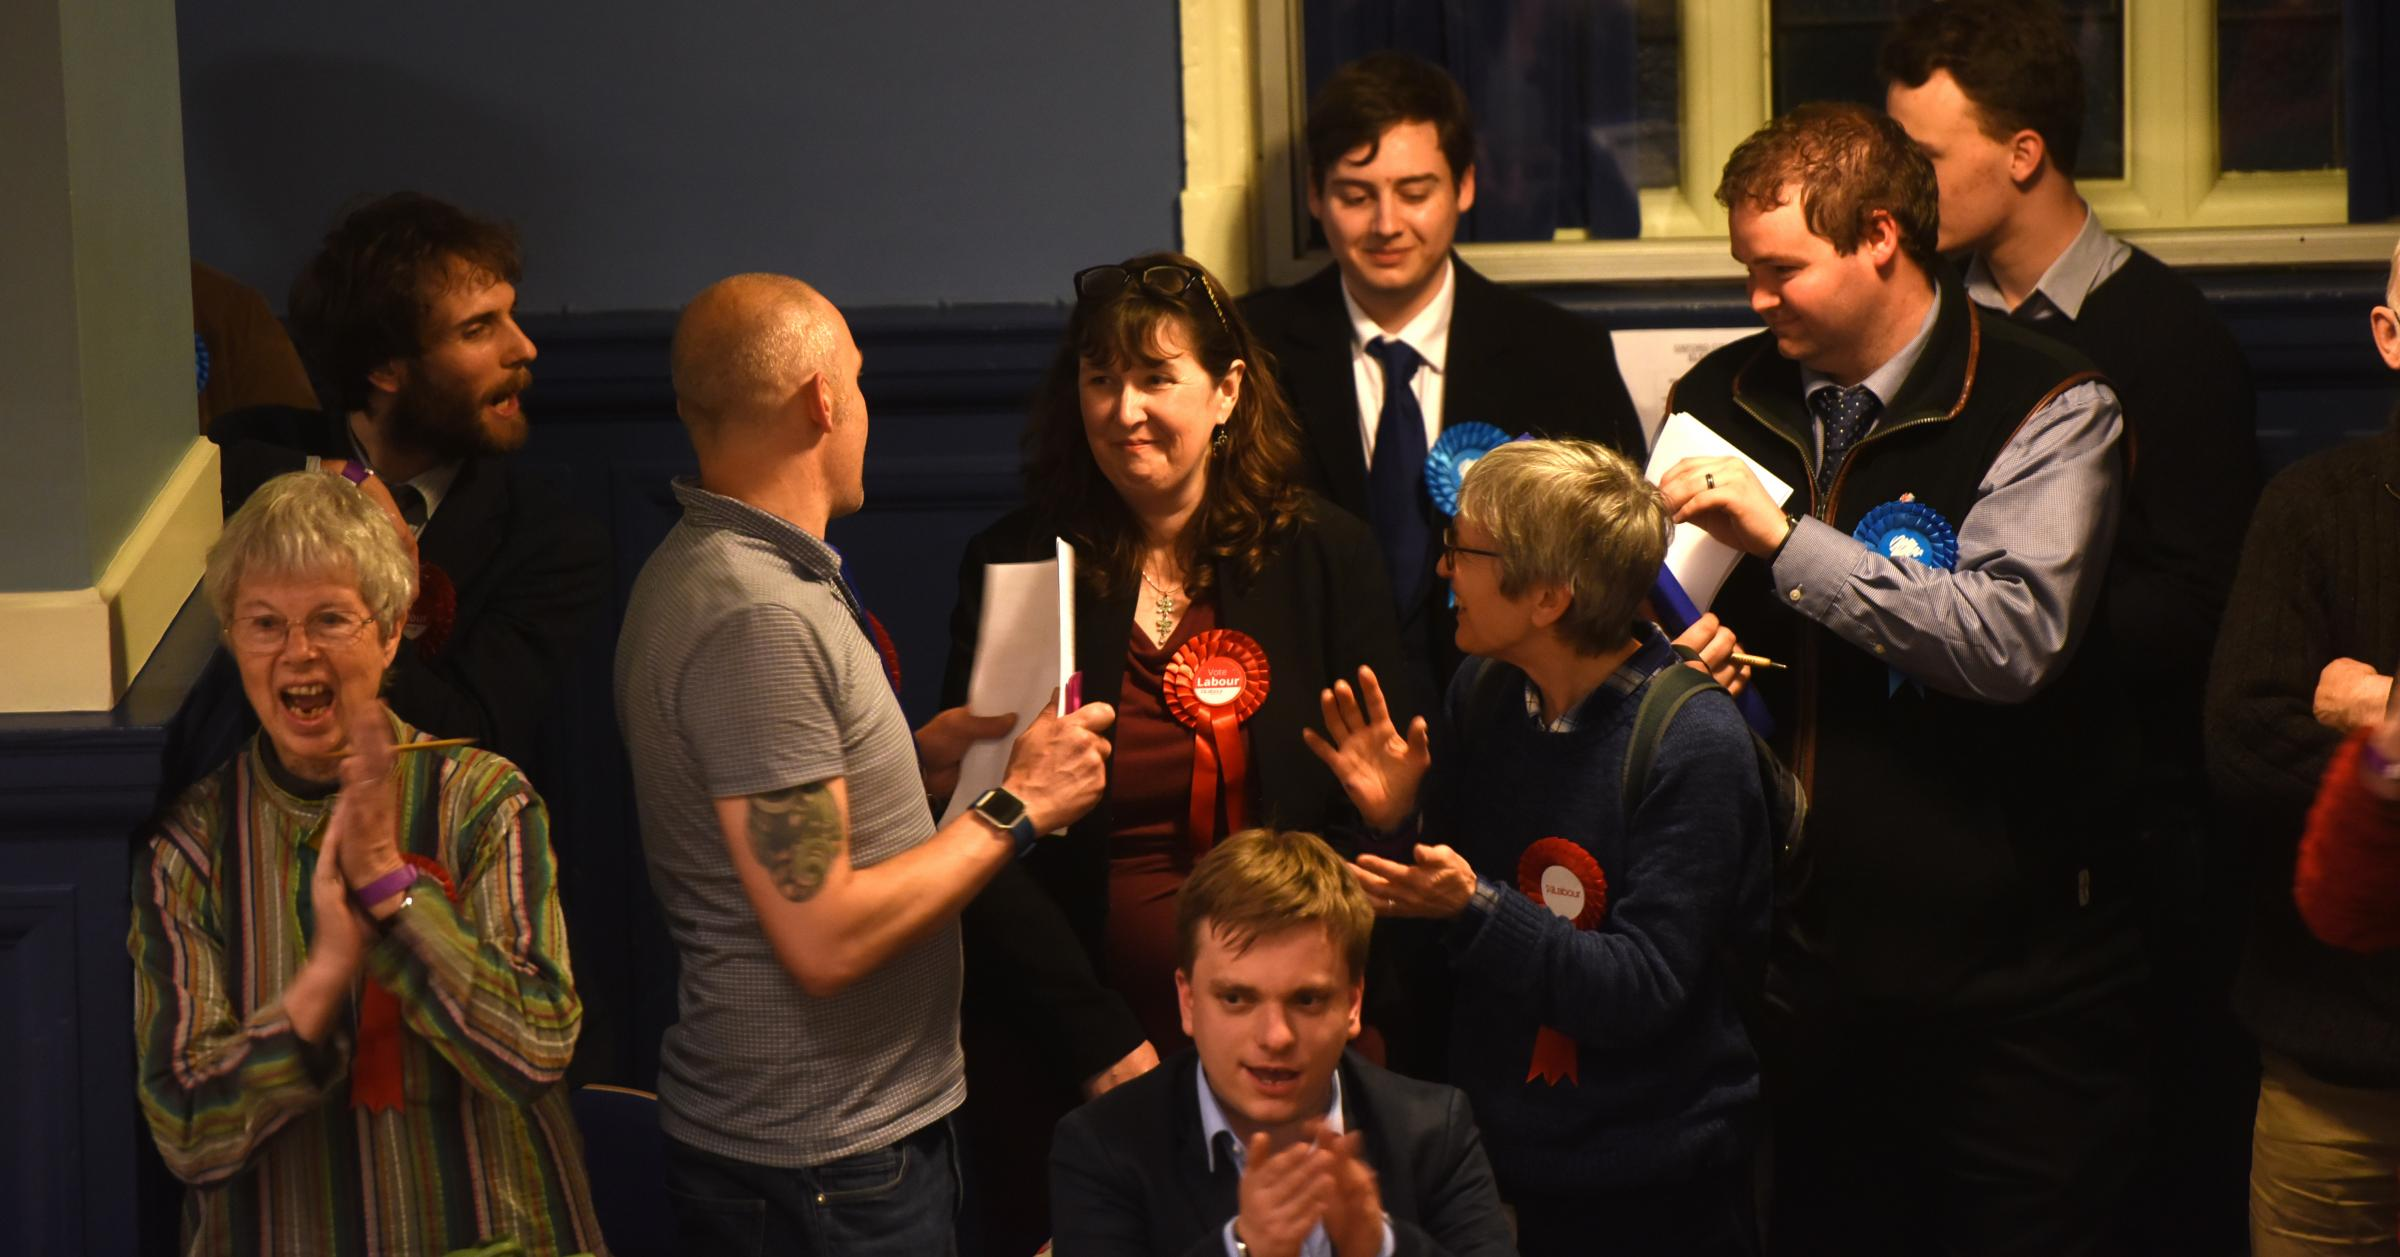 LOCAL ELECTION: Labour make gains to narrow Conservative majority